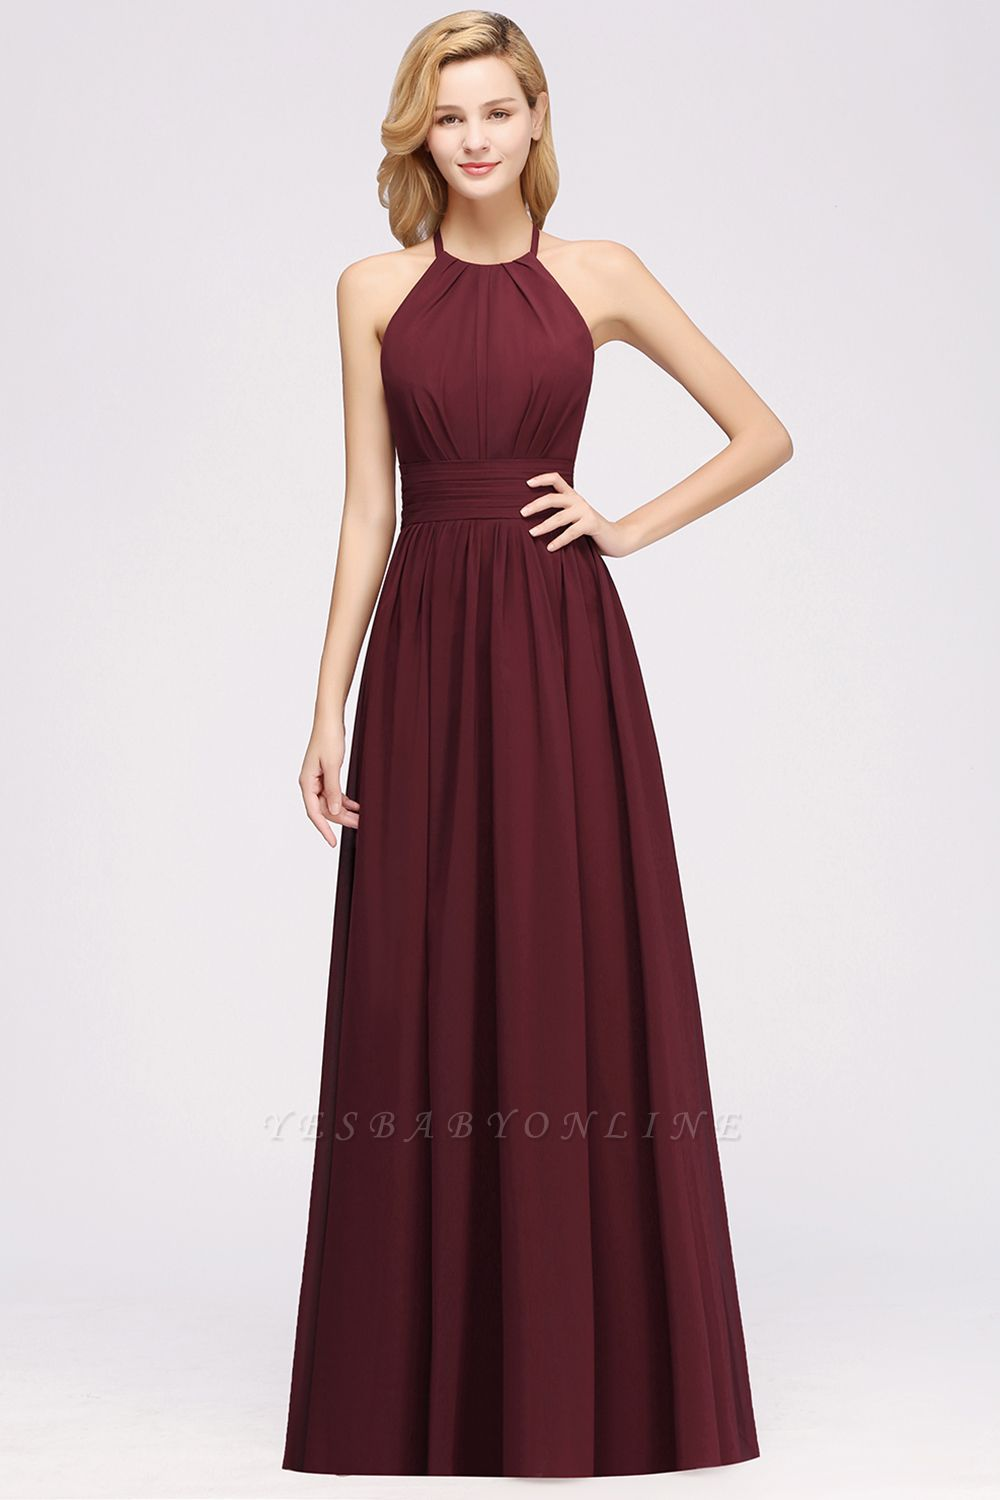 Simple A-Line Chiffon Bridesmaid Dresses | Halter Ruched Hollow Back Maid of The Honor Dresses